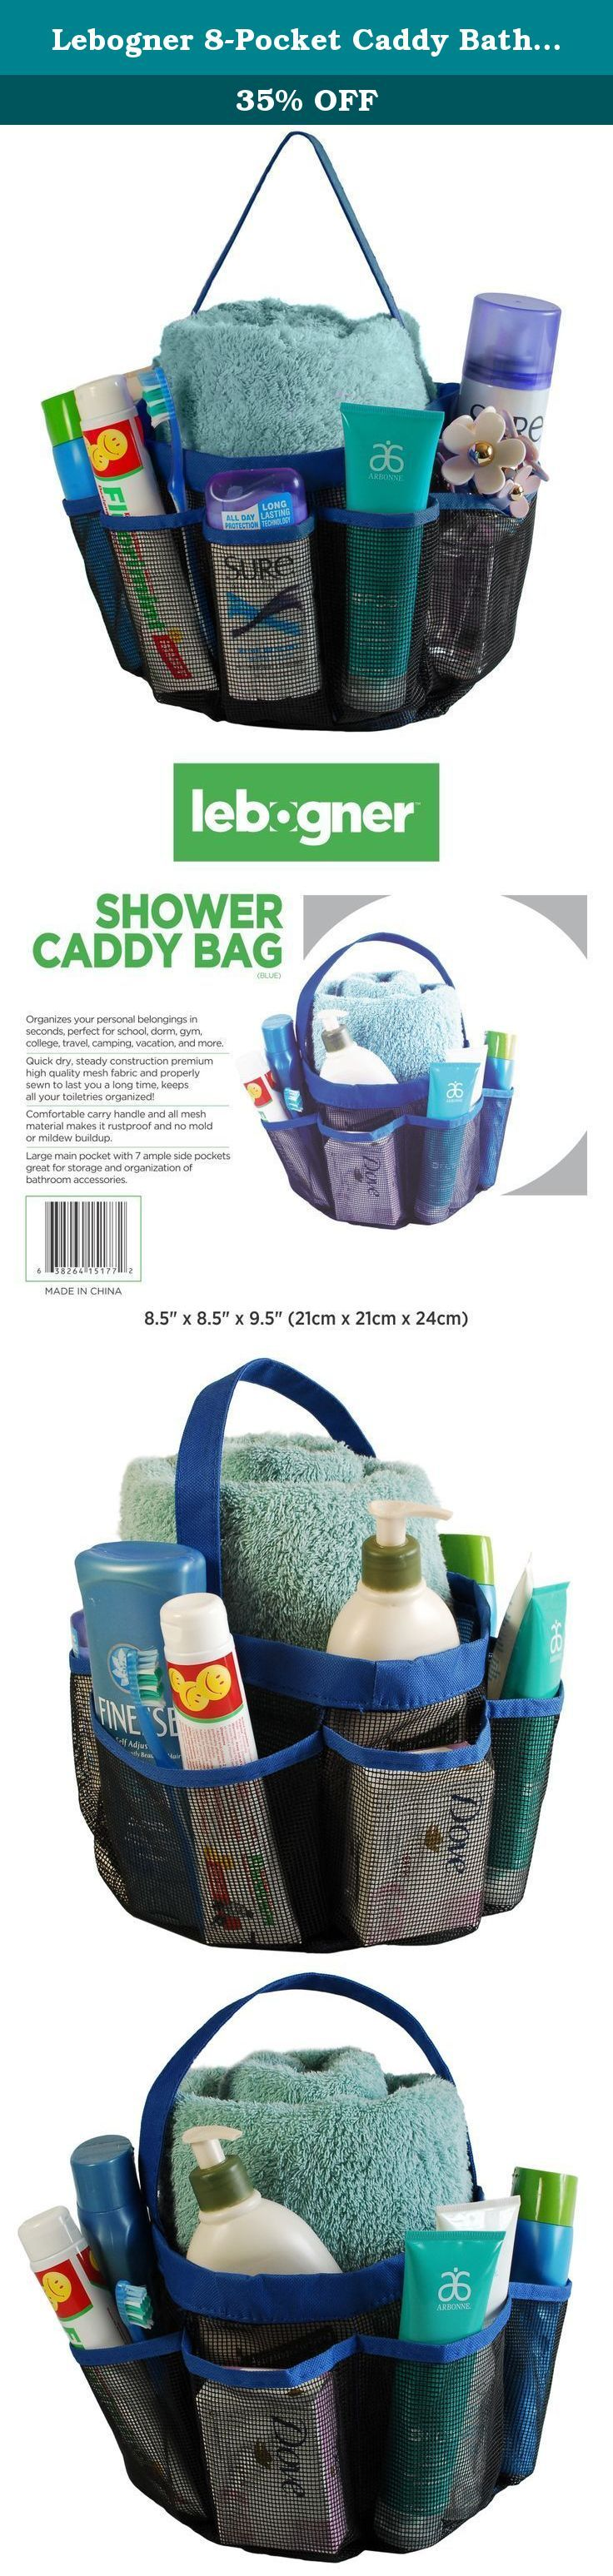 Lebogner 8-Pocket Caddy Bathroom Organizer, Blue. Tired of plastic shower caddies that are bulky and heavy when travelling? Fed up with cheap Shower Totes that break easily? Lead a busy life and do not have time to constantly gather all your things? Need a Shower Caddy that holds your essential items but is still compact? Fed up with all your small items falling out constantly? The Lebogner 8 Pocket Shower Caddy Tote Bag is the answer!!! Whether you're living in a dorm, away at a camp...